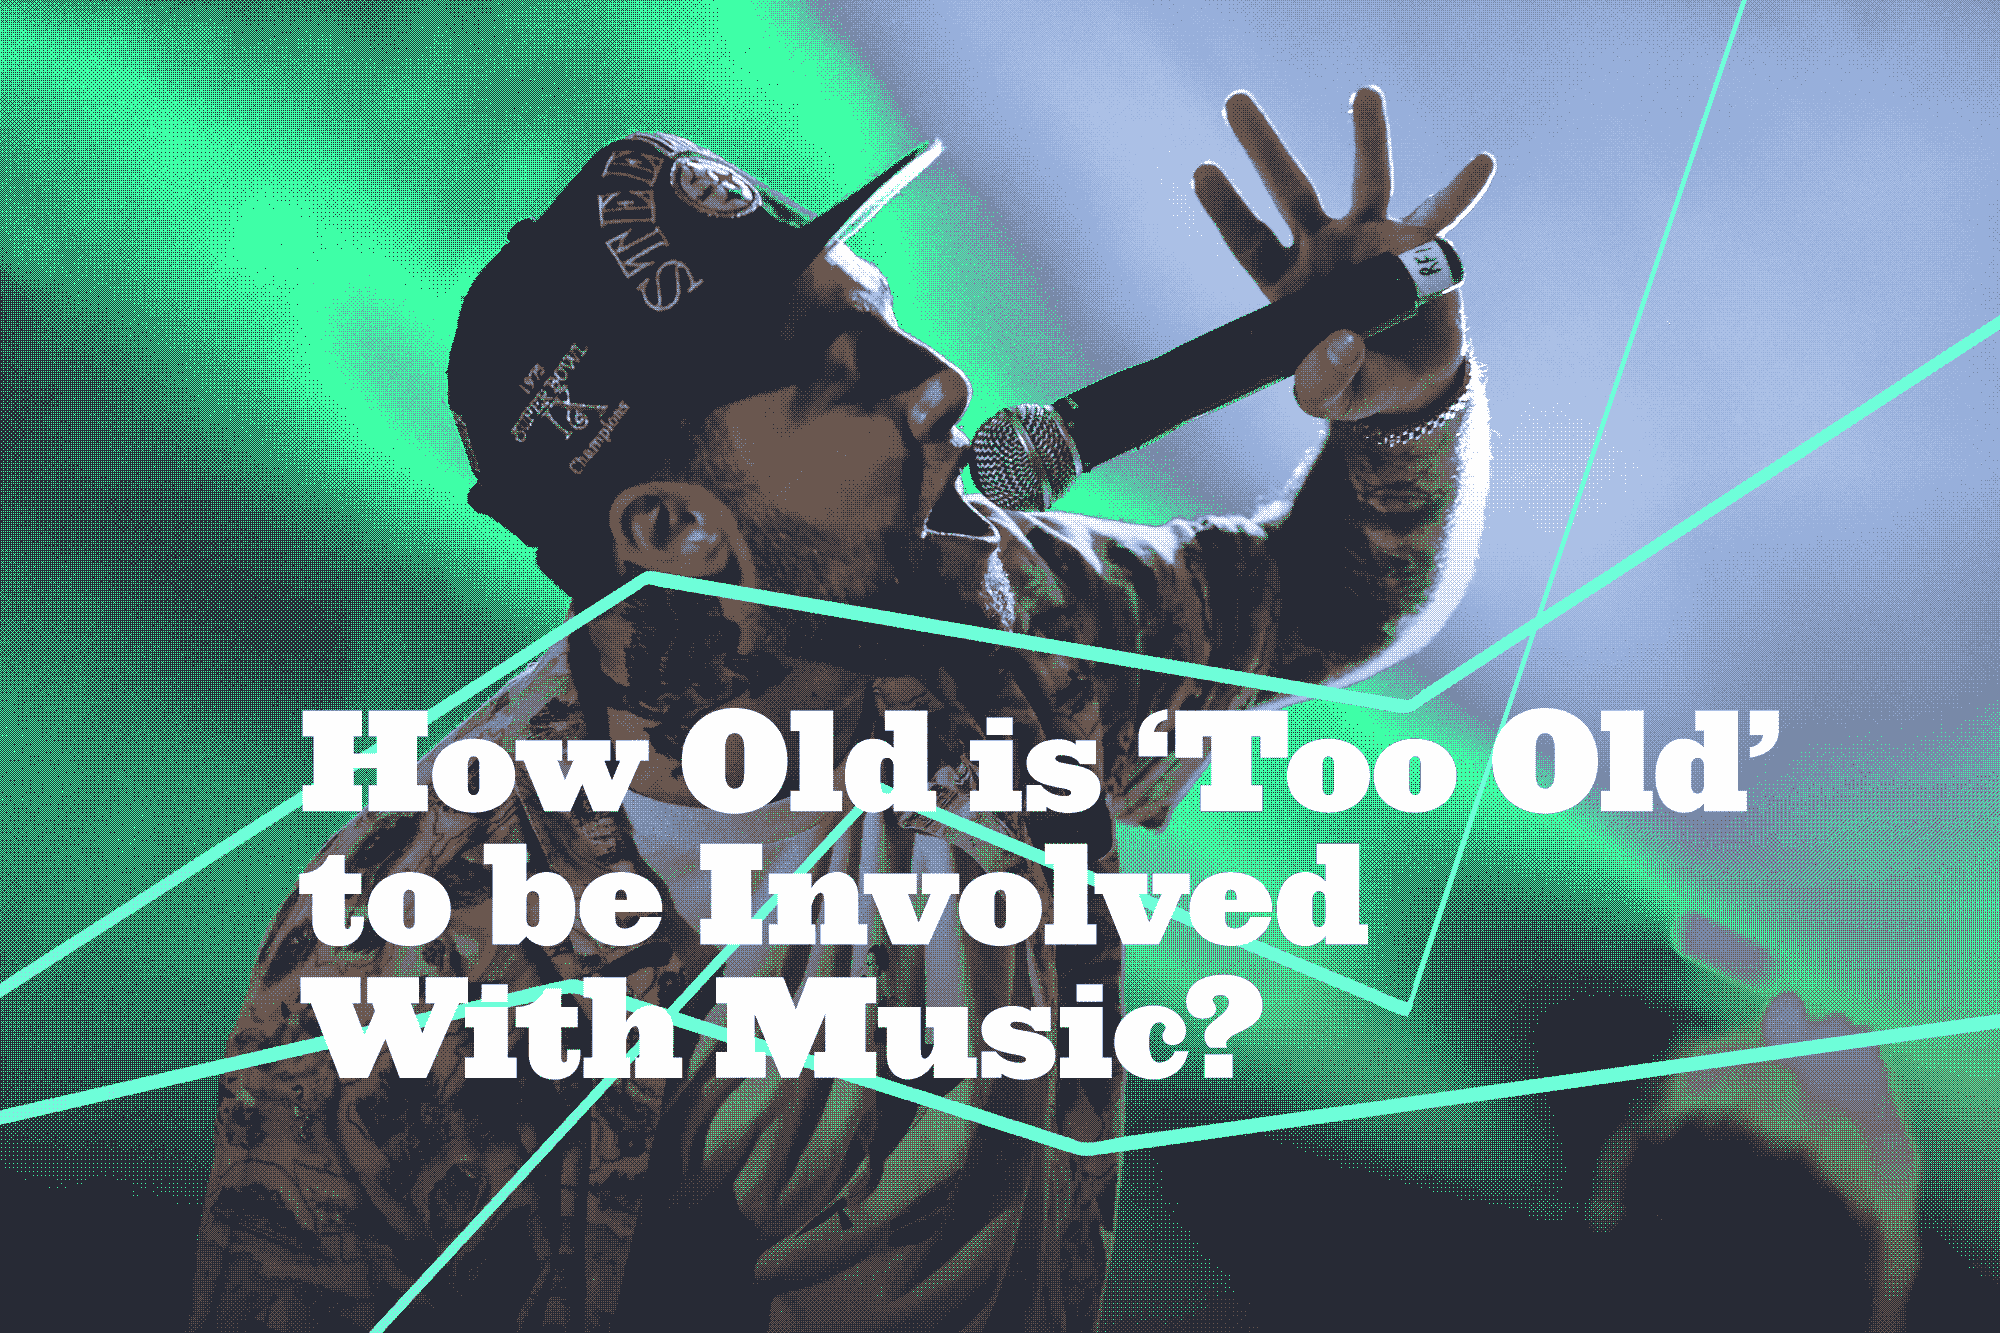 How Old is 'Too Old' to be Involved With Music? - Cuepoint - Medium